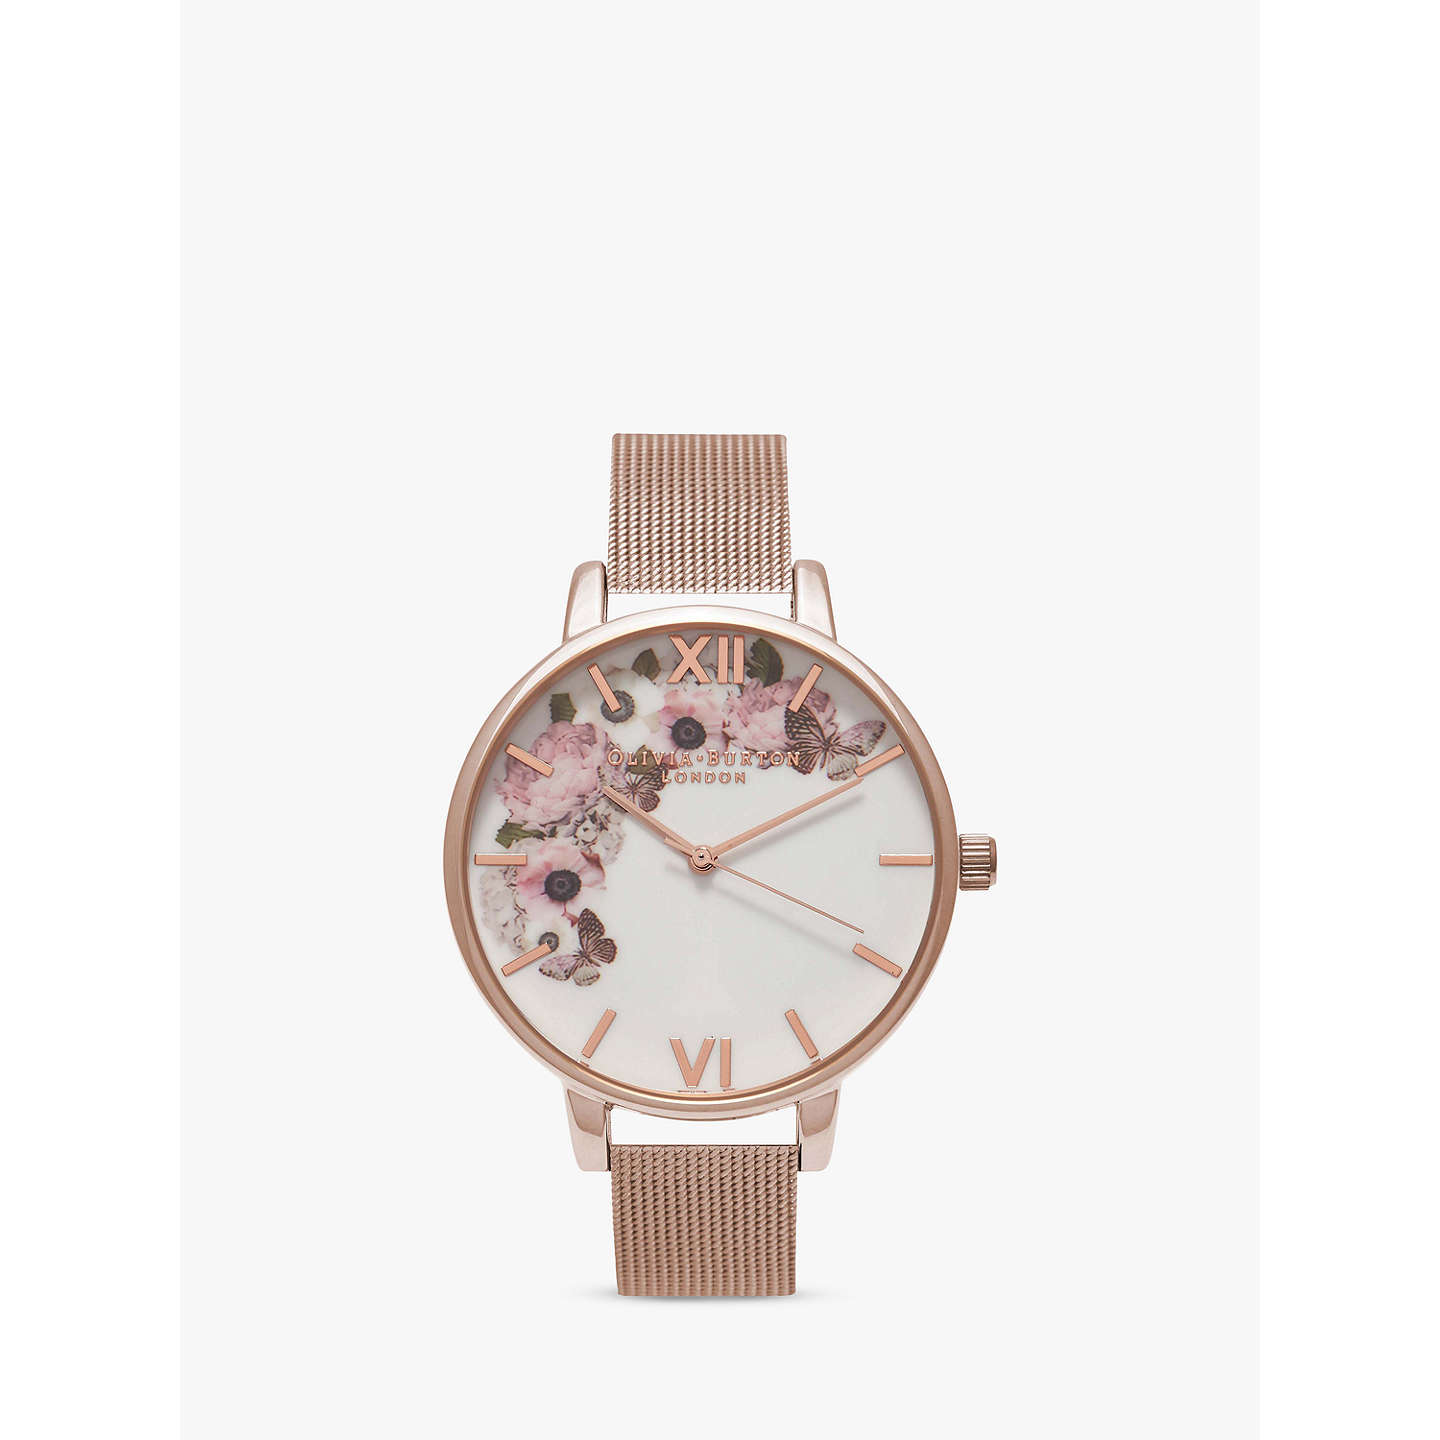 price gold s in rose pink watch shop michael malaysia women best ritz womens acetate kors watches chrono